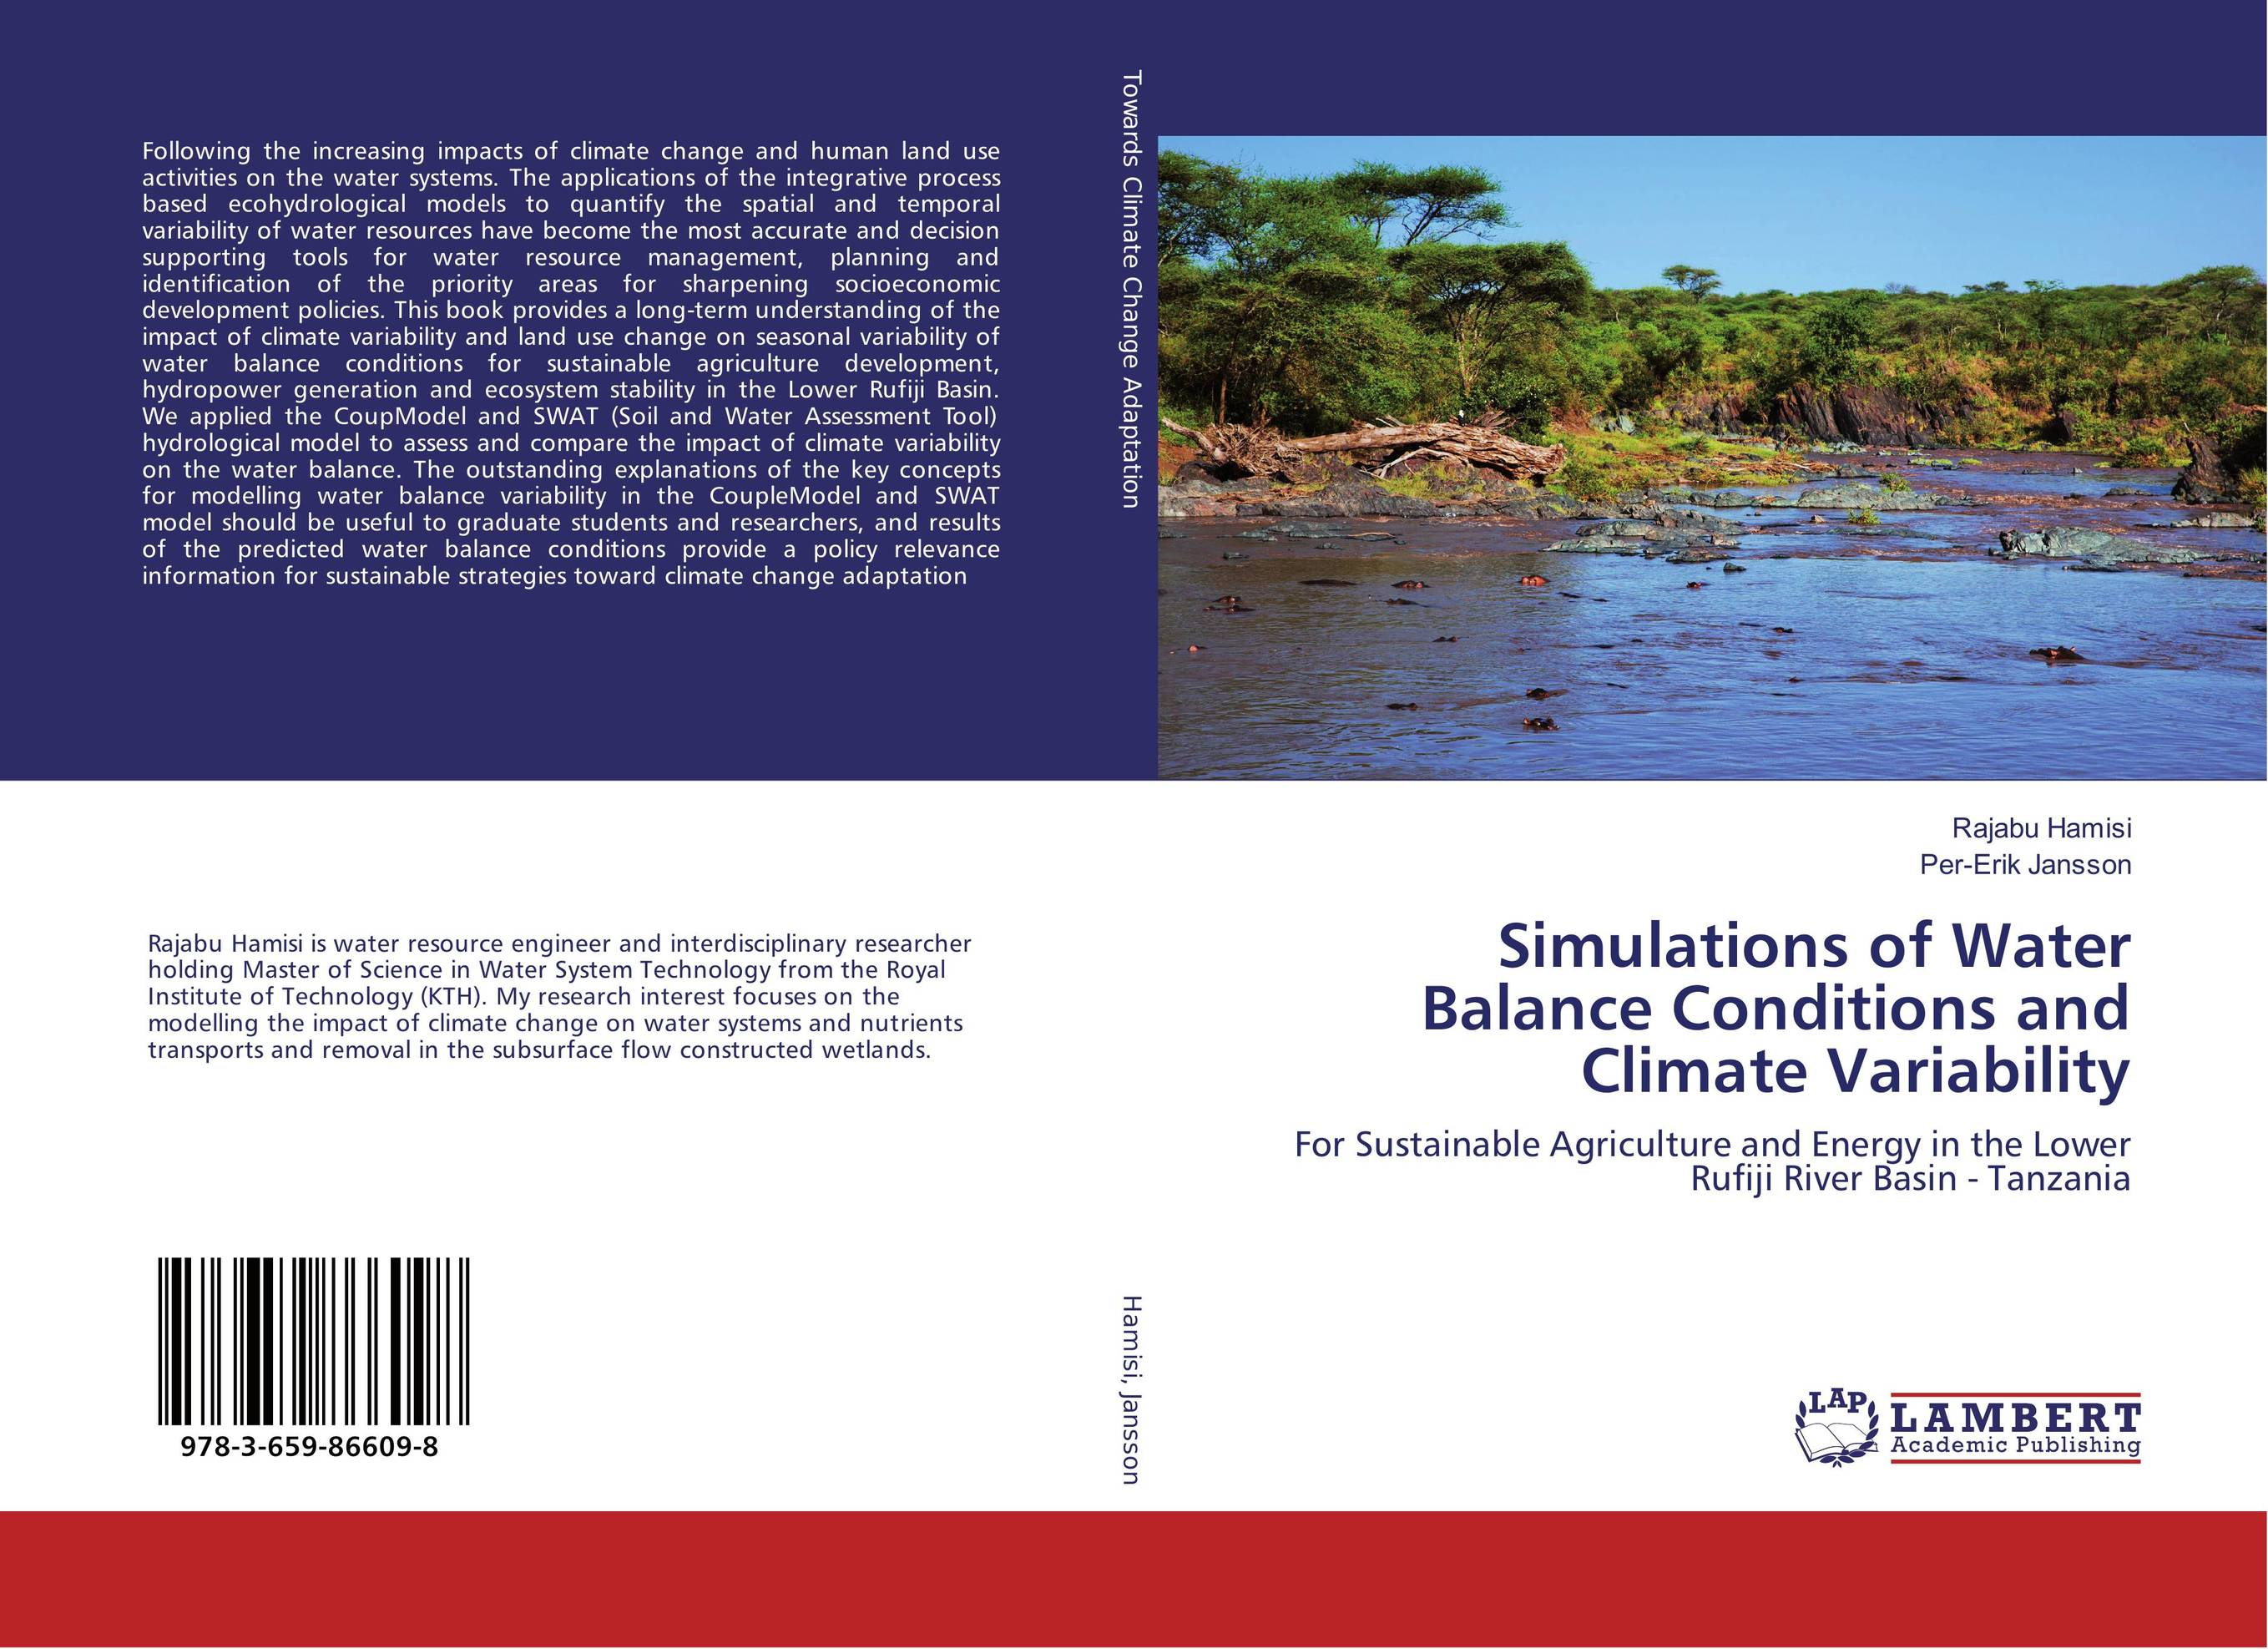 Simulations of Water Balance Conditions and Climate Variability suh jude abenwi the economic impact of climate variability